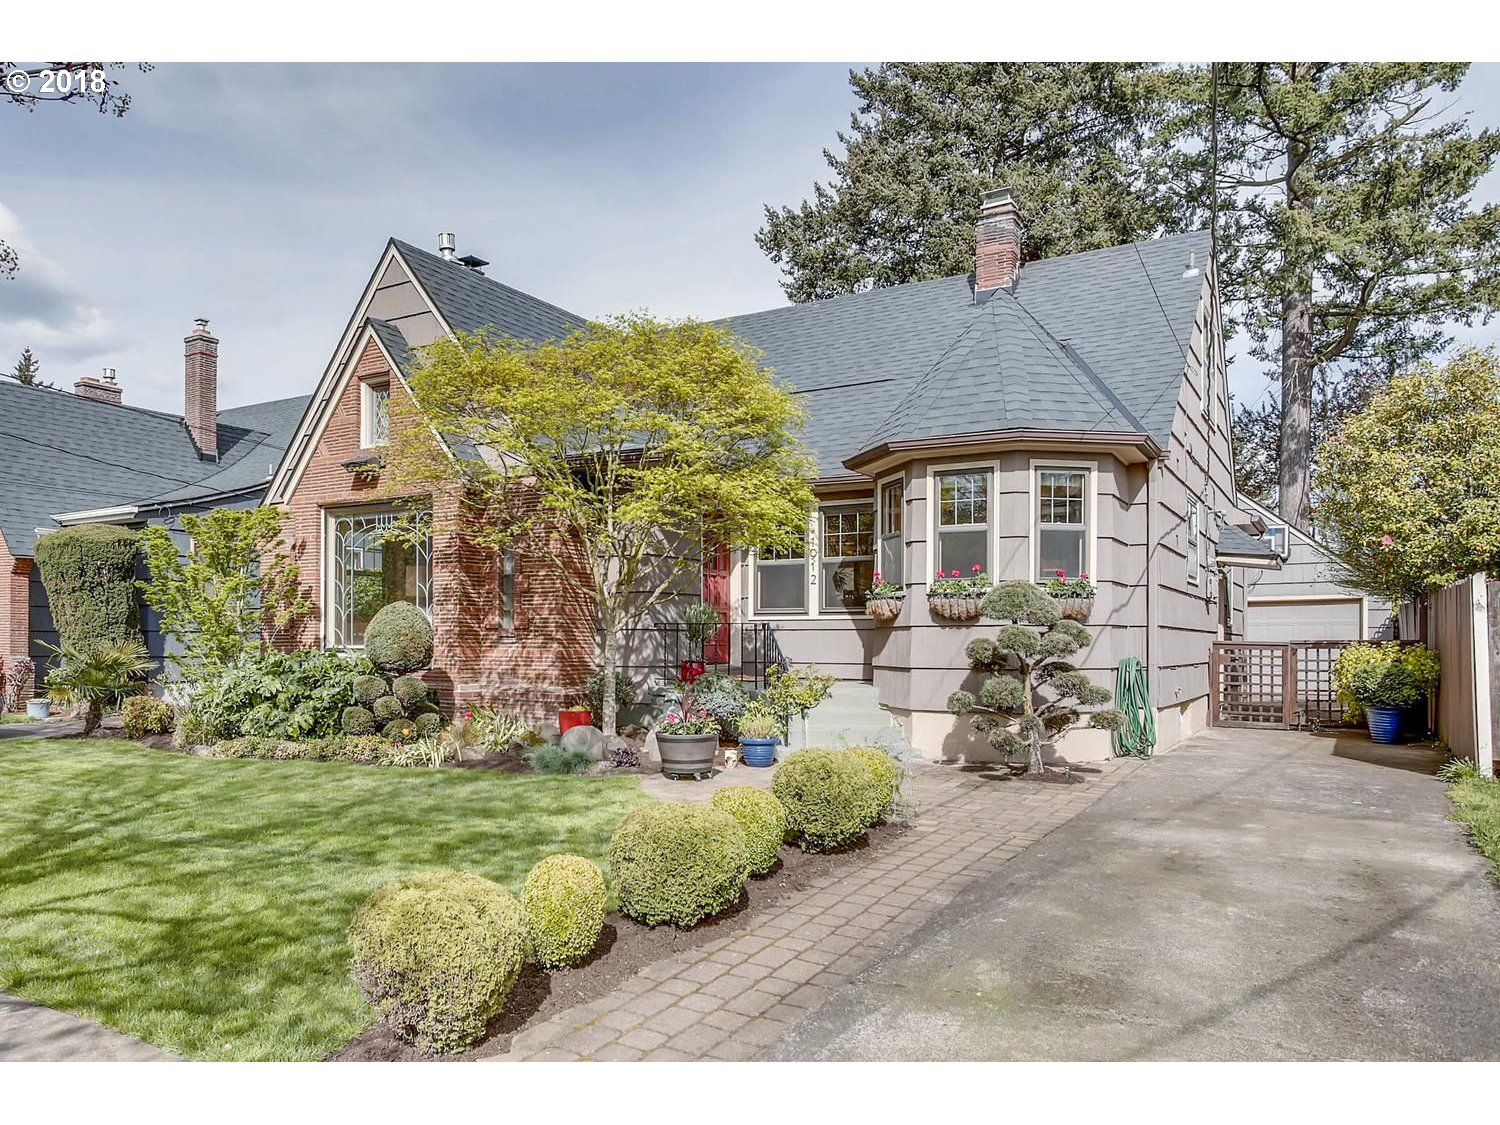 Heart of Rose City neighborhood!  Charming English with all the goodies intact. Beautiful hdwds, leaded glass windows, mahogany woodwork doors and accents! Colorful kitchen with updates and breakfast nook open to formal dining room and living rm w/gas fplc. Finished bsmt with fam.rm and gas fplc. Main floor den/office/bdrm w/french doors to deck and lovely yd Cov'd patio w/wood fplc  Mstr suite up/remod. bath and oak floors. Hurry!